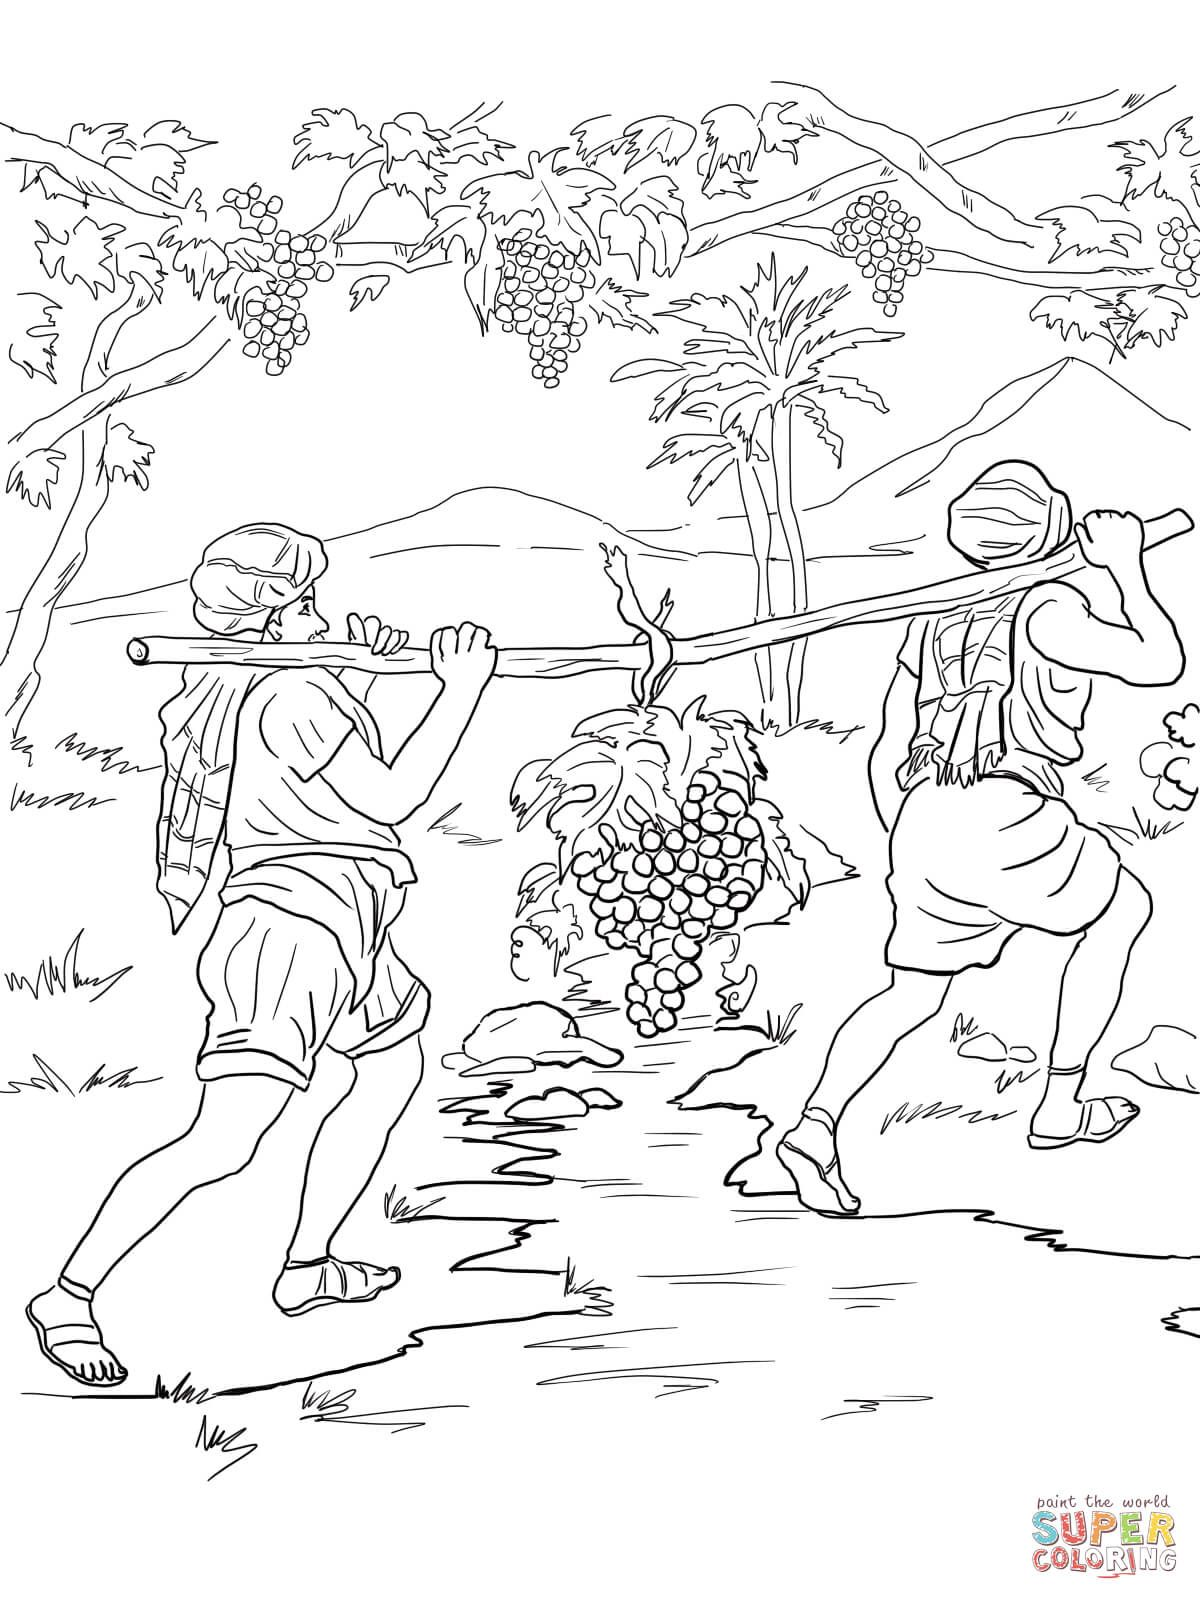 Find This Pin And More On Bible Story Coloring Pages Crafts By Levagnetha